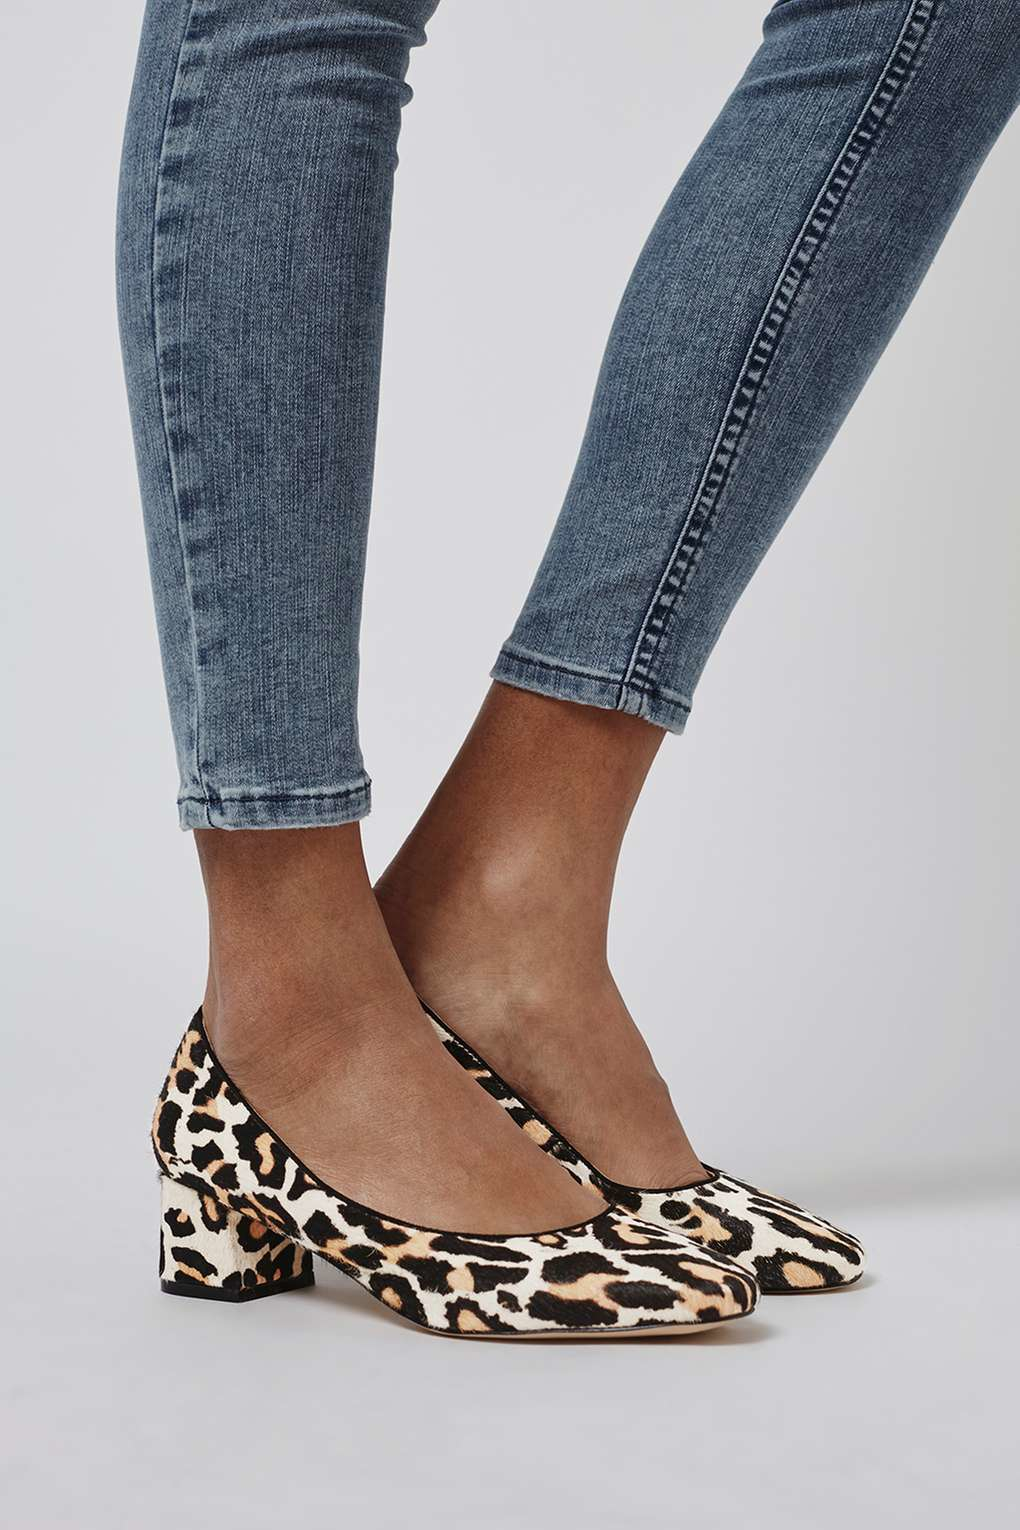 Topshop Juliette Pony Leather Mid Heel Shoes In Animal